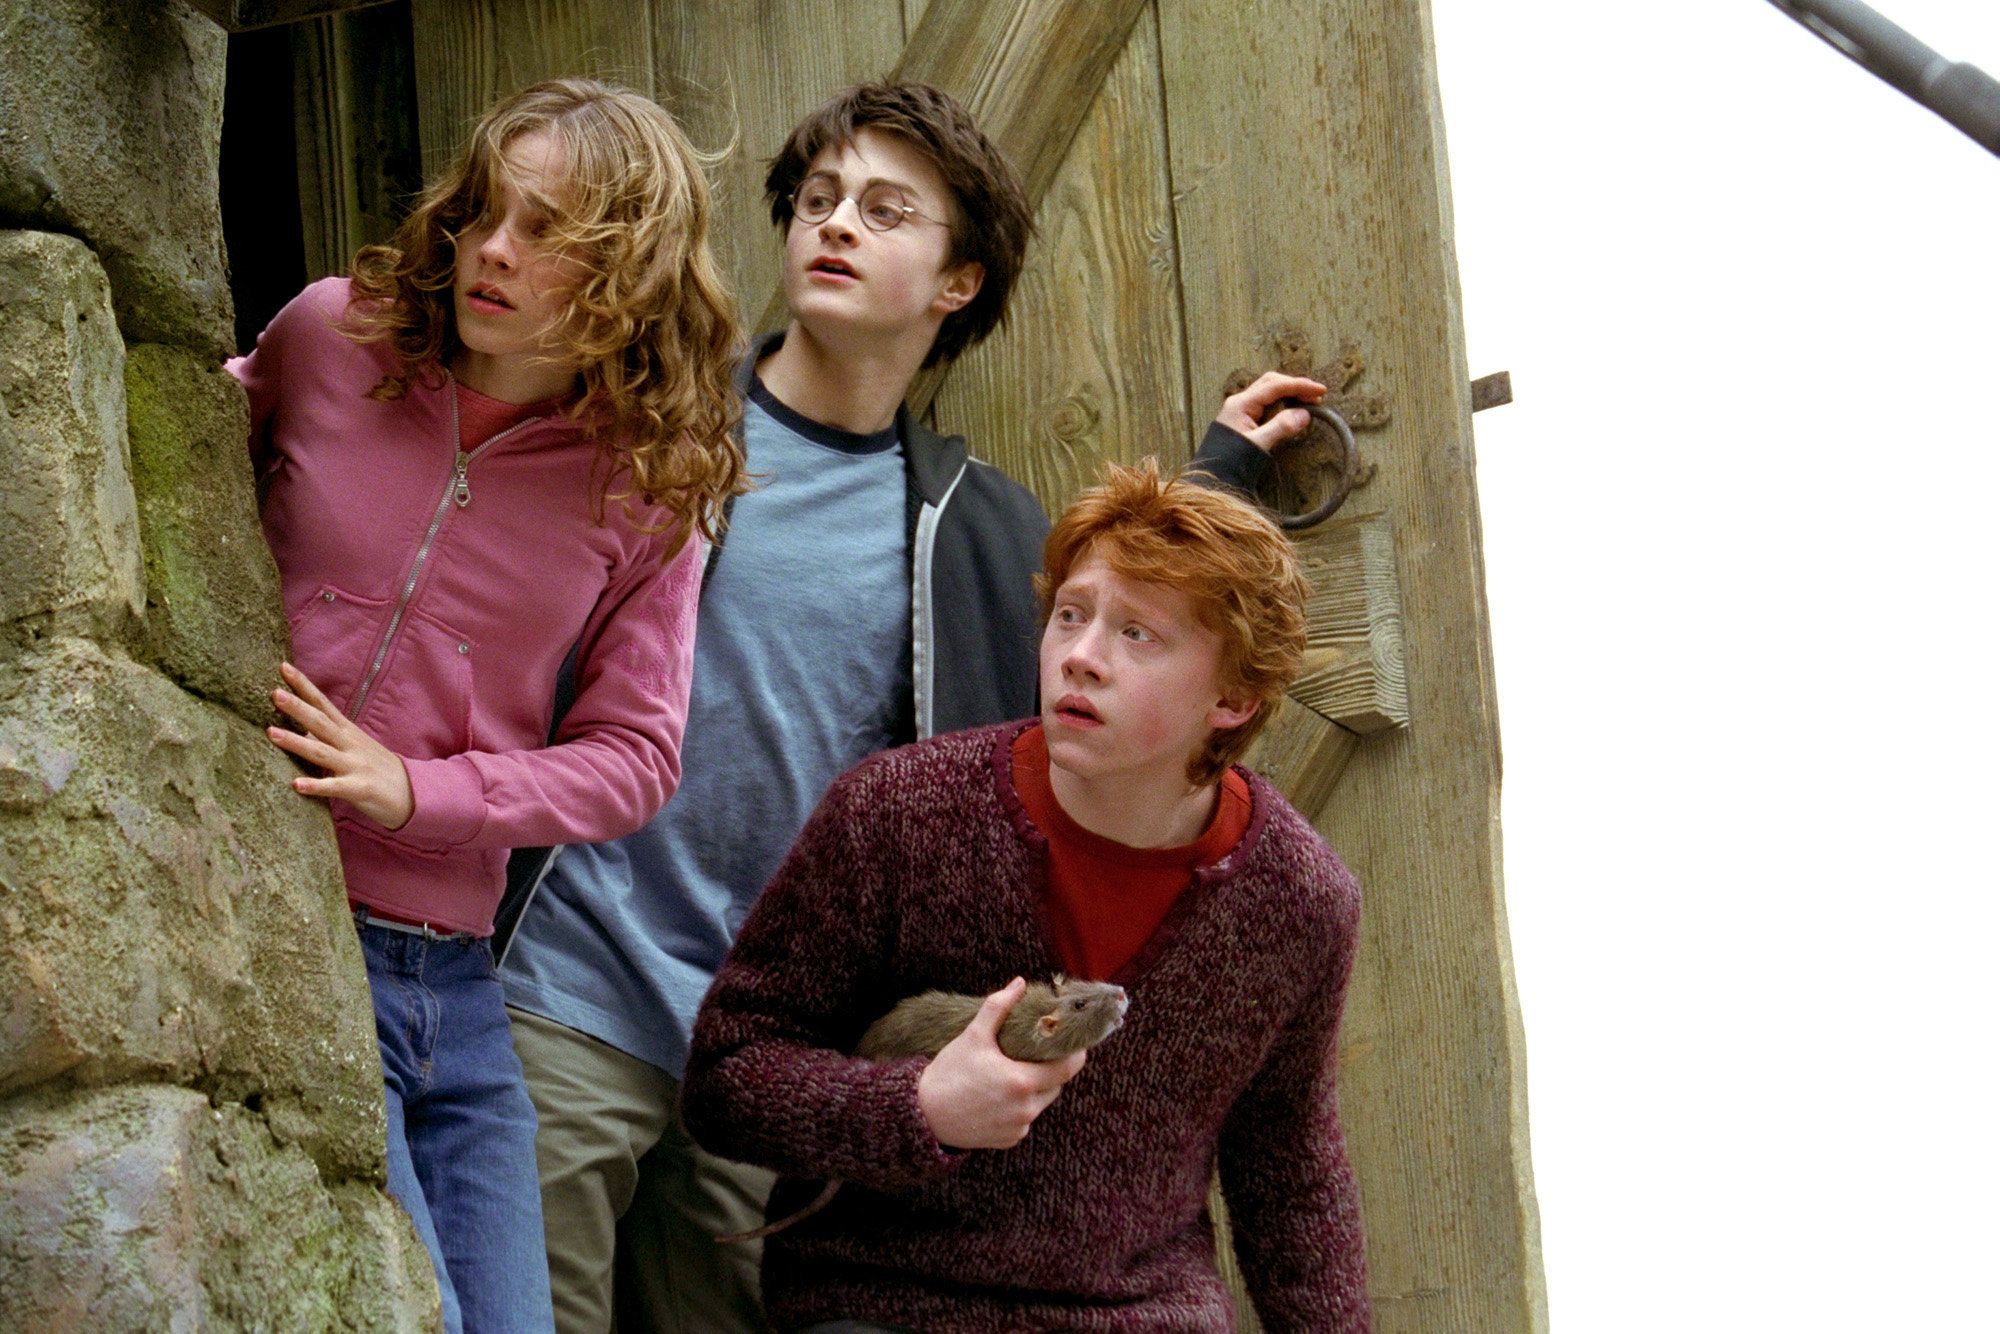 (Left to right) Emma Warson (Hermoine Granger), Daniel Radcliffe (Harry  Potter) and Rupert Grint (Ron Weasley), in the movie HARRY  POTTER  AND THE PRISONER OF AZKABAN. Photo credit: Murray Close / Warner Bros. Pictures